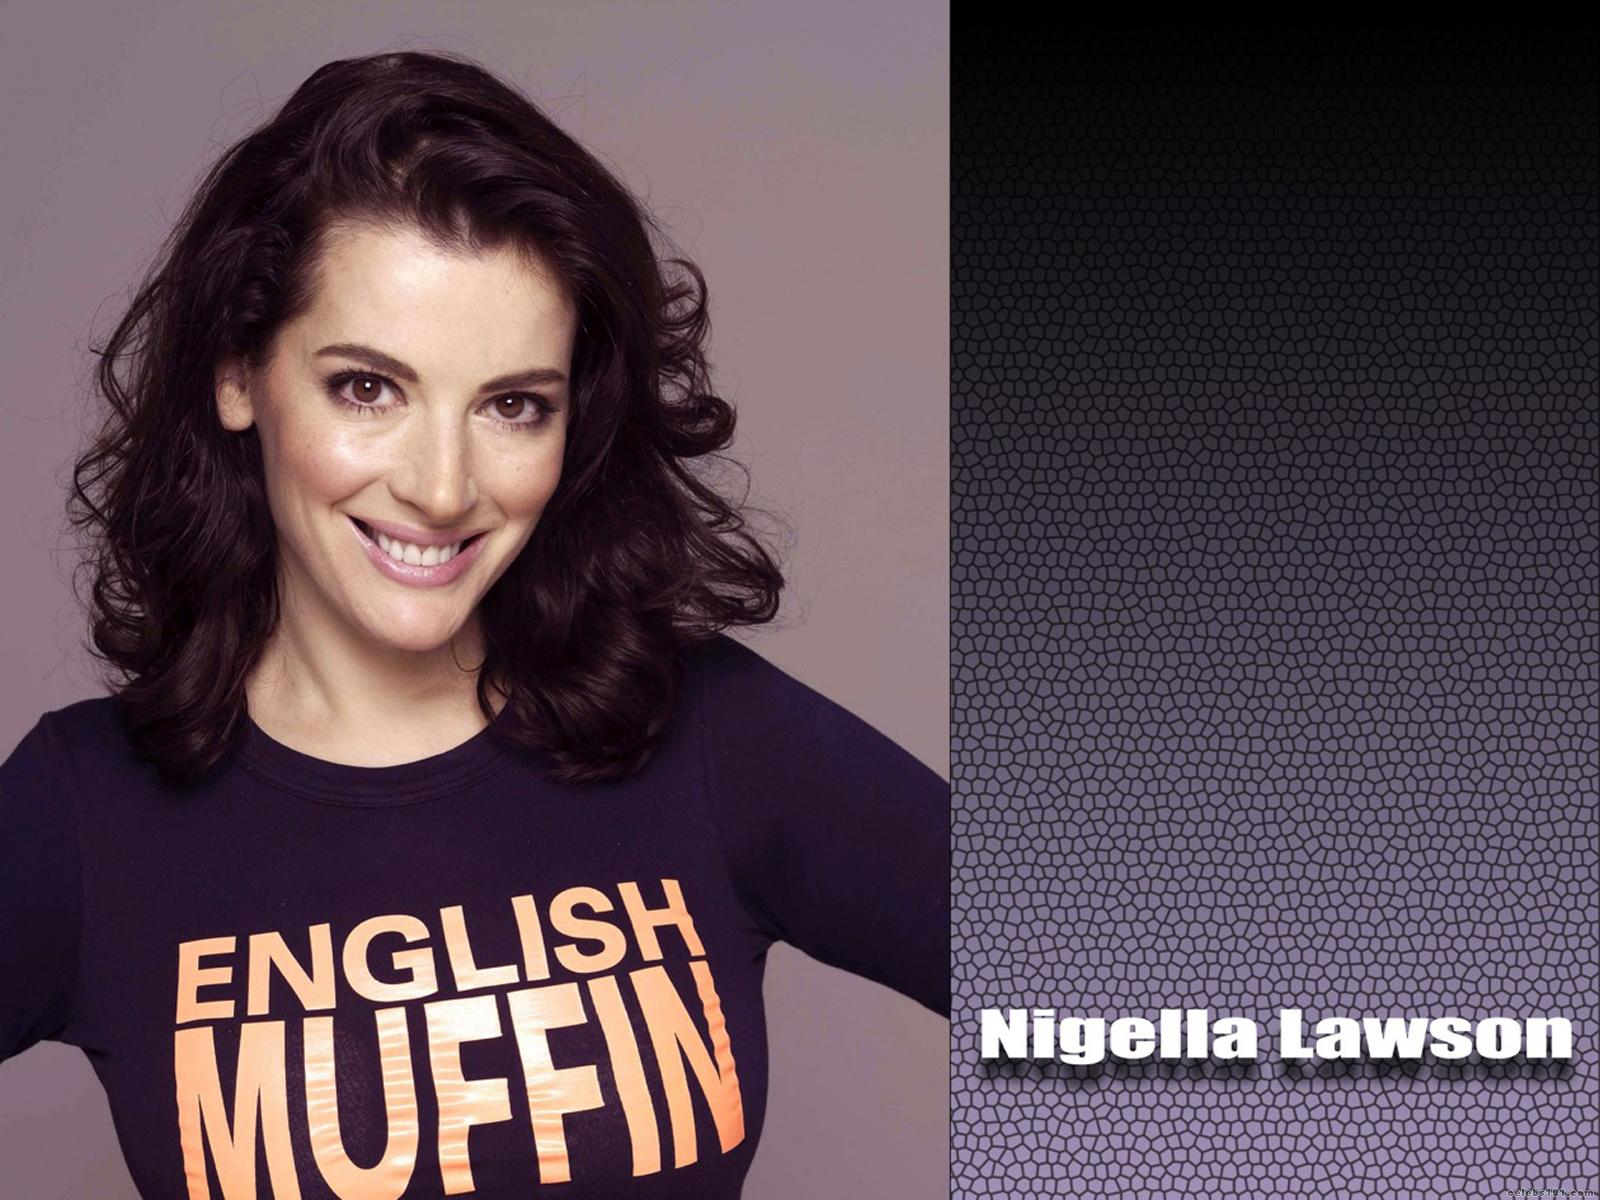 wallpaper images for living room nigella lawson high quality wallpaper size 1600x1200 of 20950